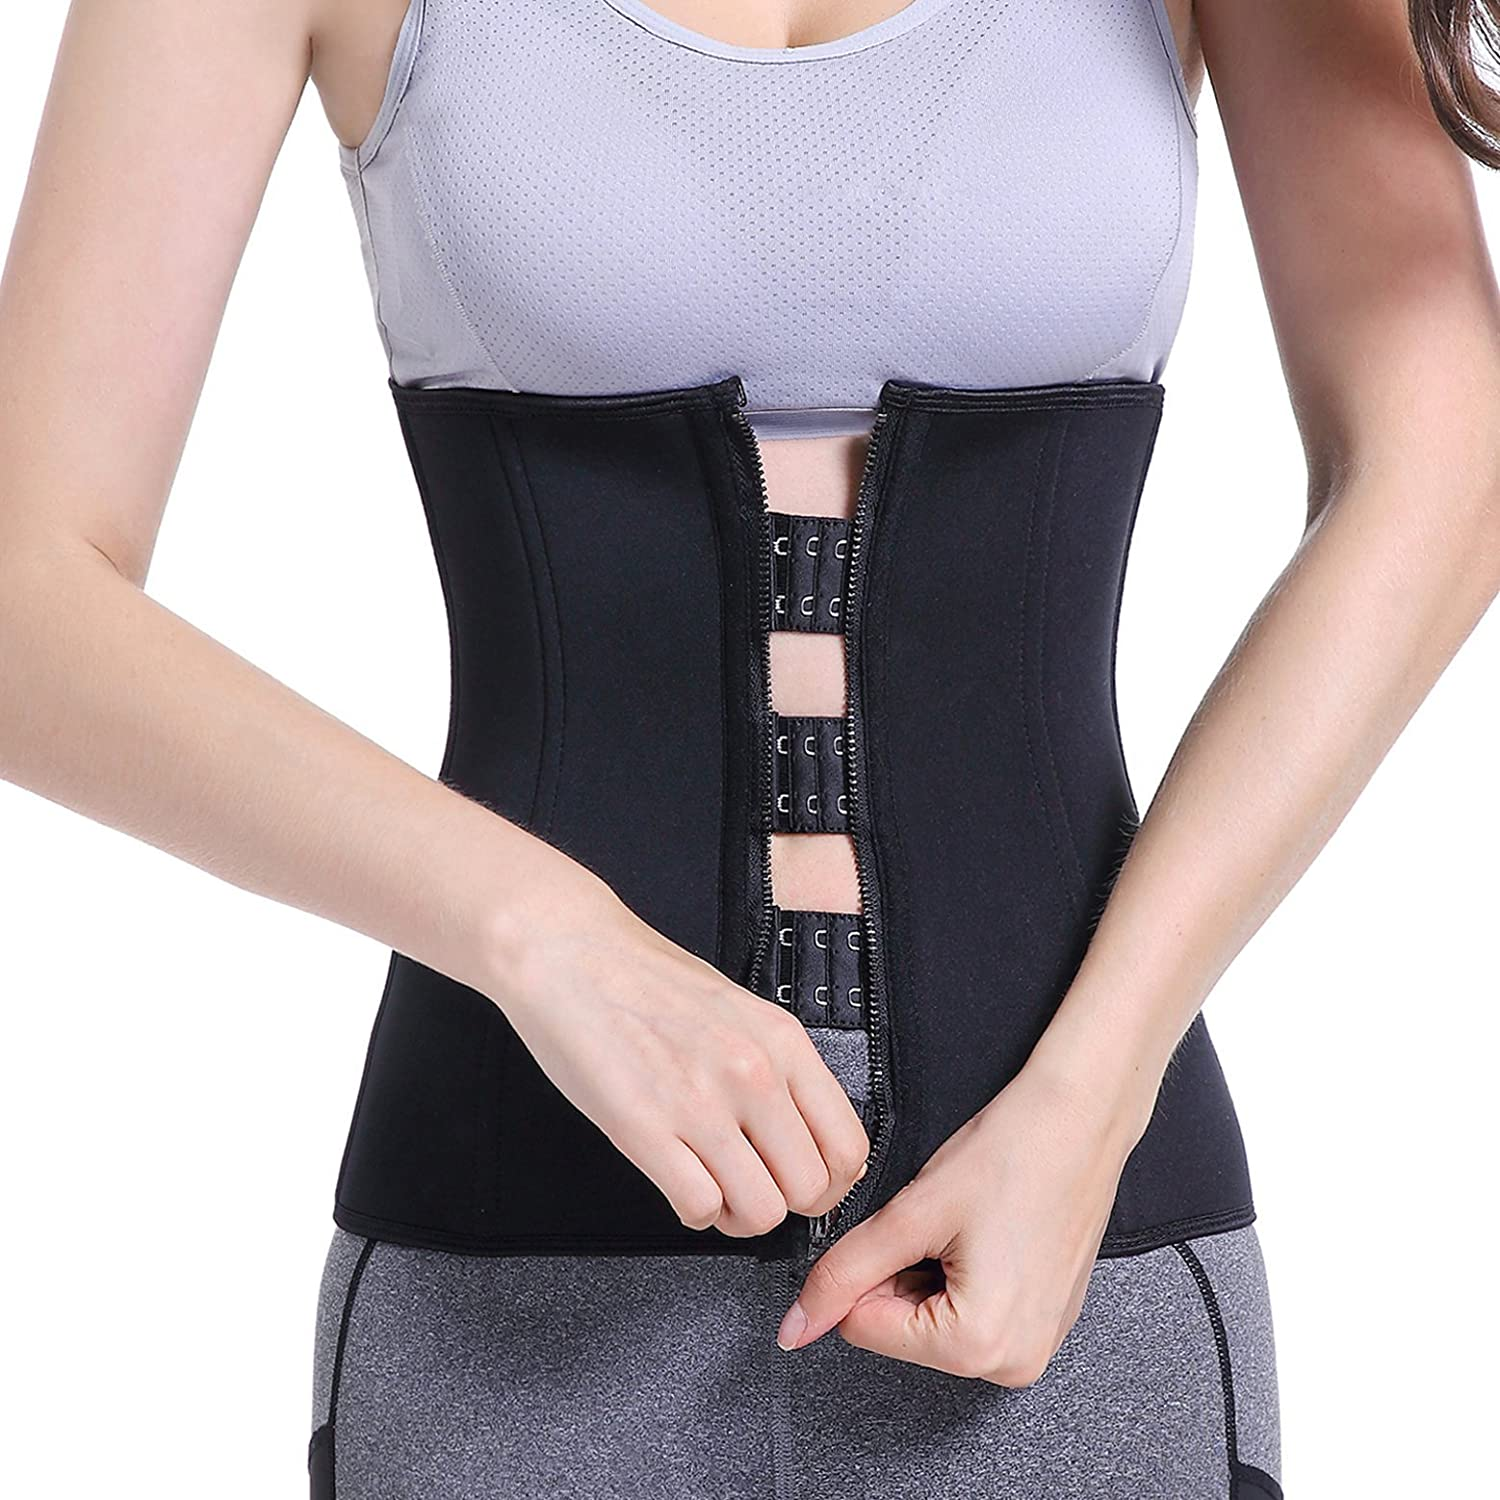 Bolkopess Women's Waist Trainer Corset Weight Loss Shapewear Belt Body Shaper Hot Sweat Slimming Neoprene Cincher Black